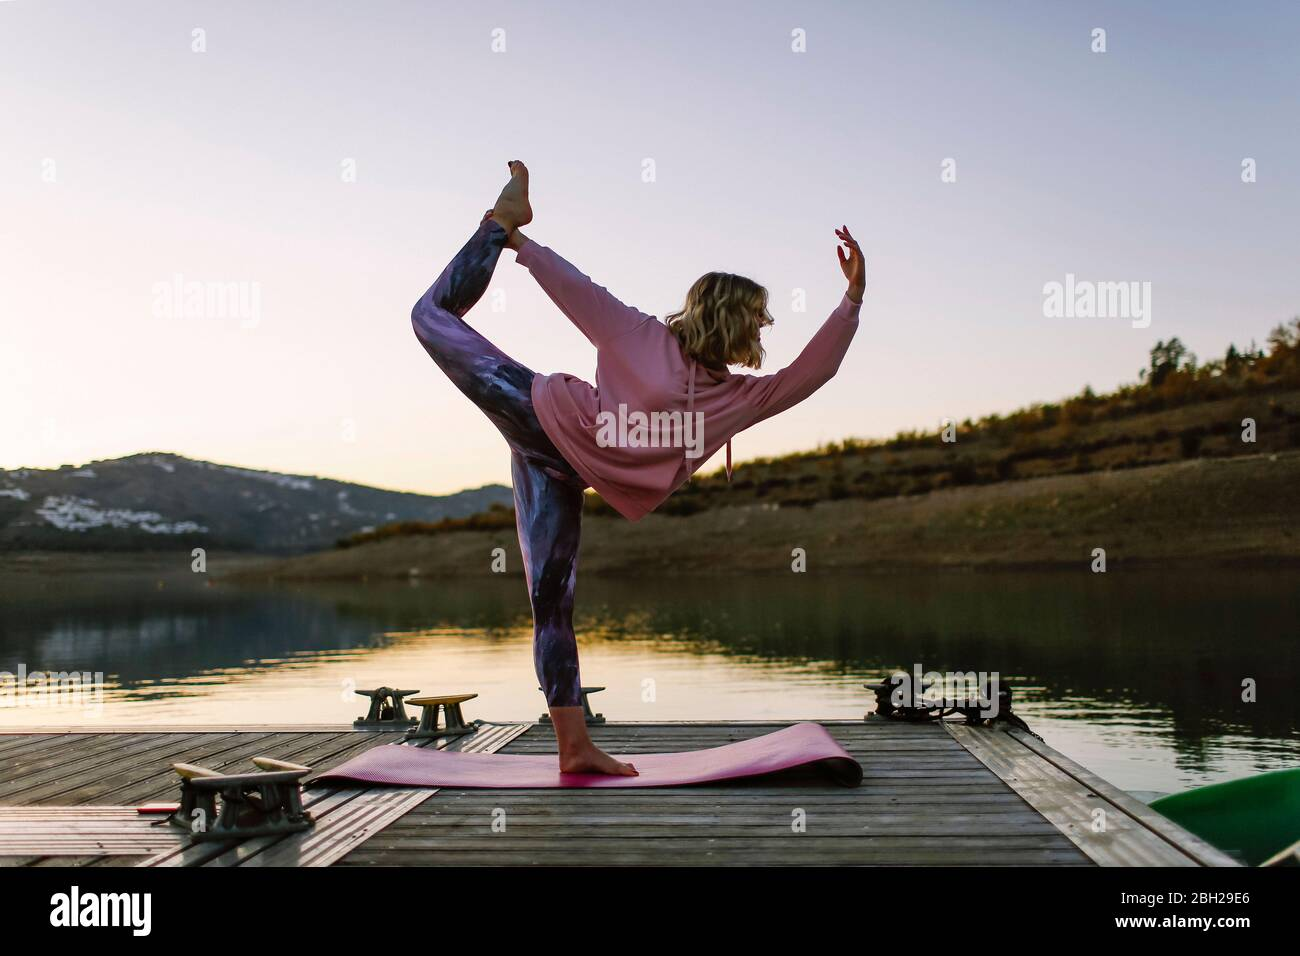 Young woman doing yoga on a jetty, dancer position Stock Photo